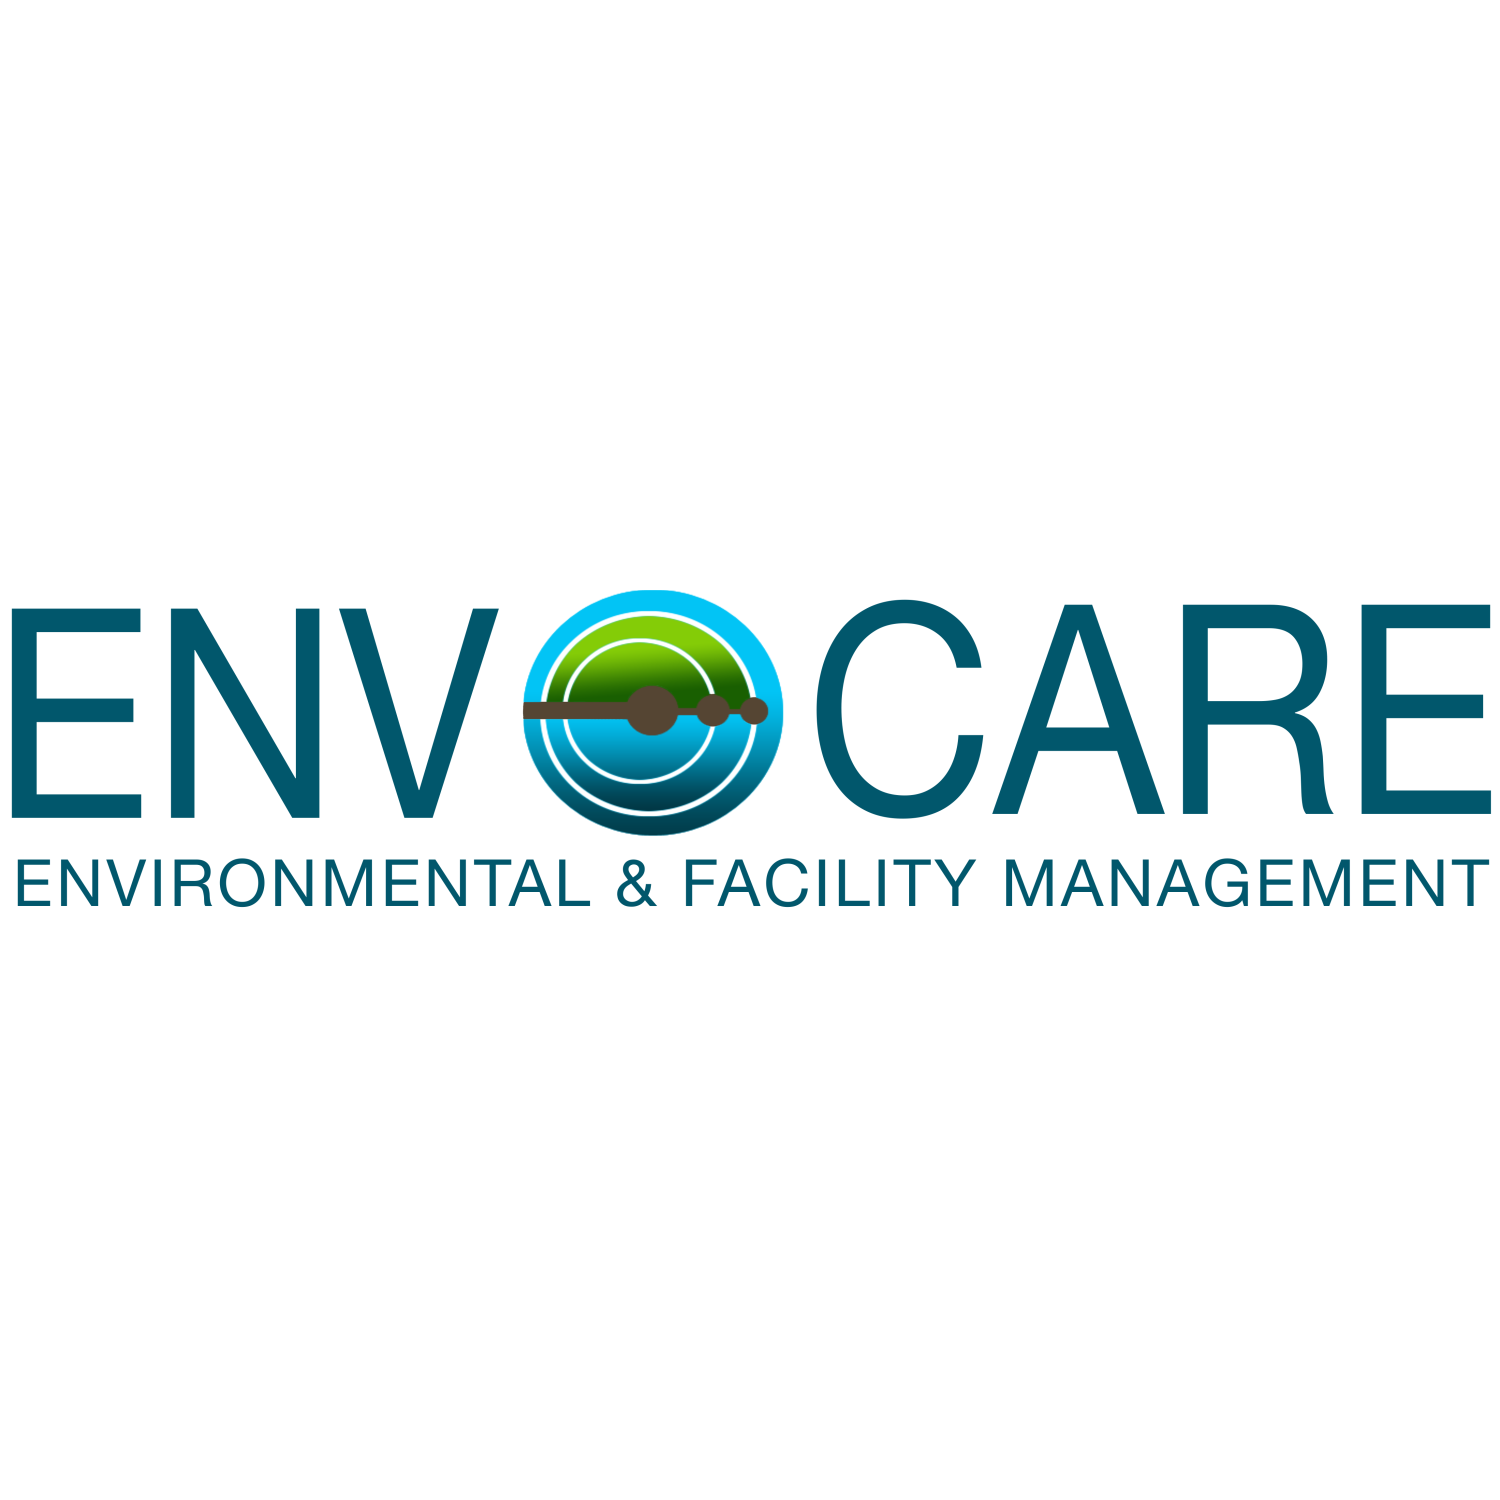 Envocare Environmental & Facility Management - Somerset, NJ - Business Consulting